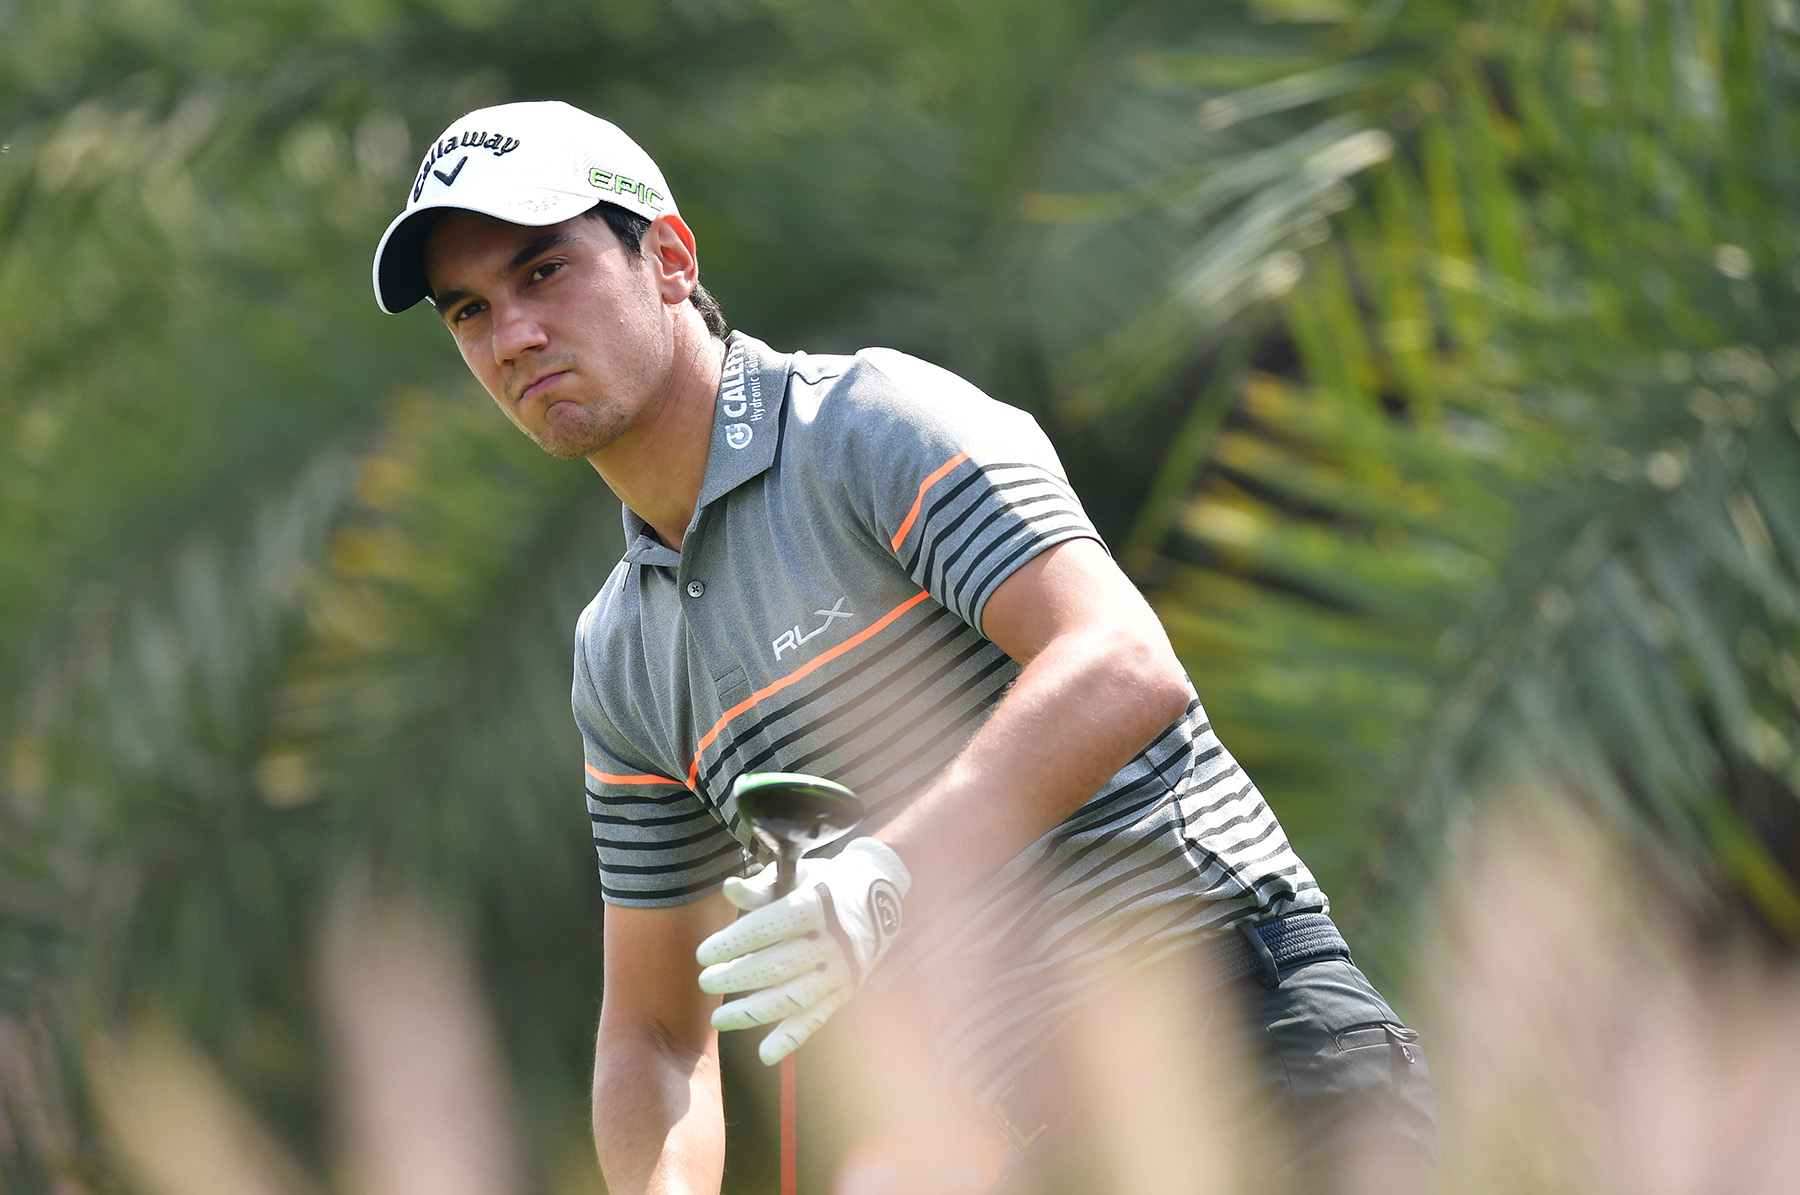 NEW DELHI, INDIA - MARCH 09: Matteo Manassero of Italy watches a shot during the first round of the Hero Indian Open at Dlf Golf and Country Club on March 9, 2017 in New Delhi, India. (Photo by Stuart Franklin/Getty Images)